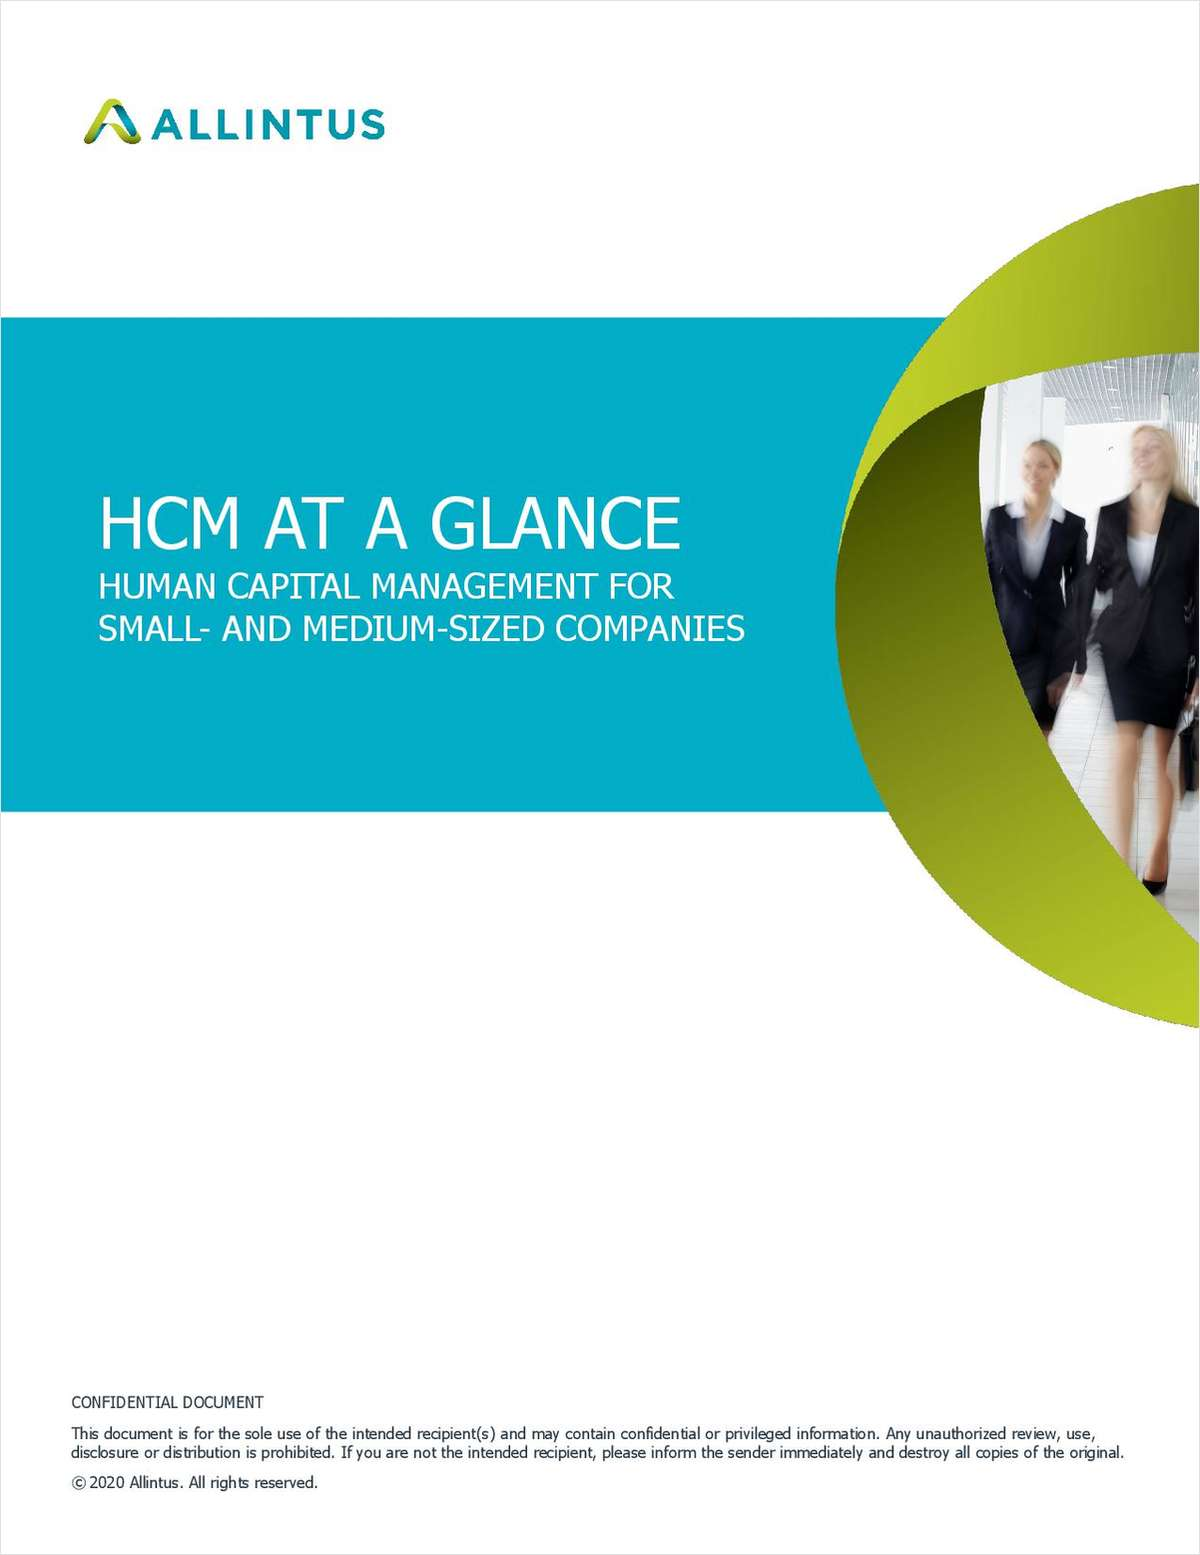 HCM at a Glance: What It Means & How It Helps Small- and Medium-sized Companies Too